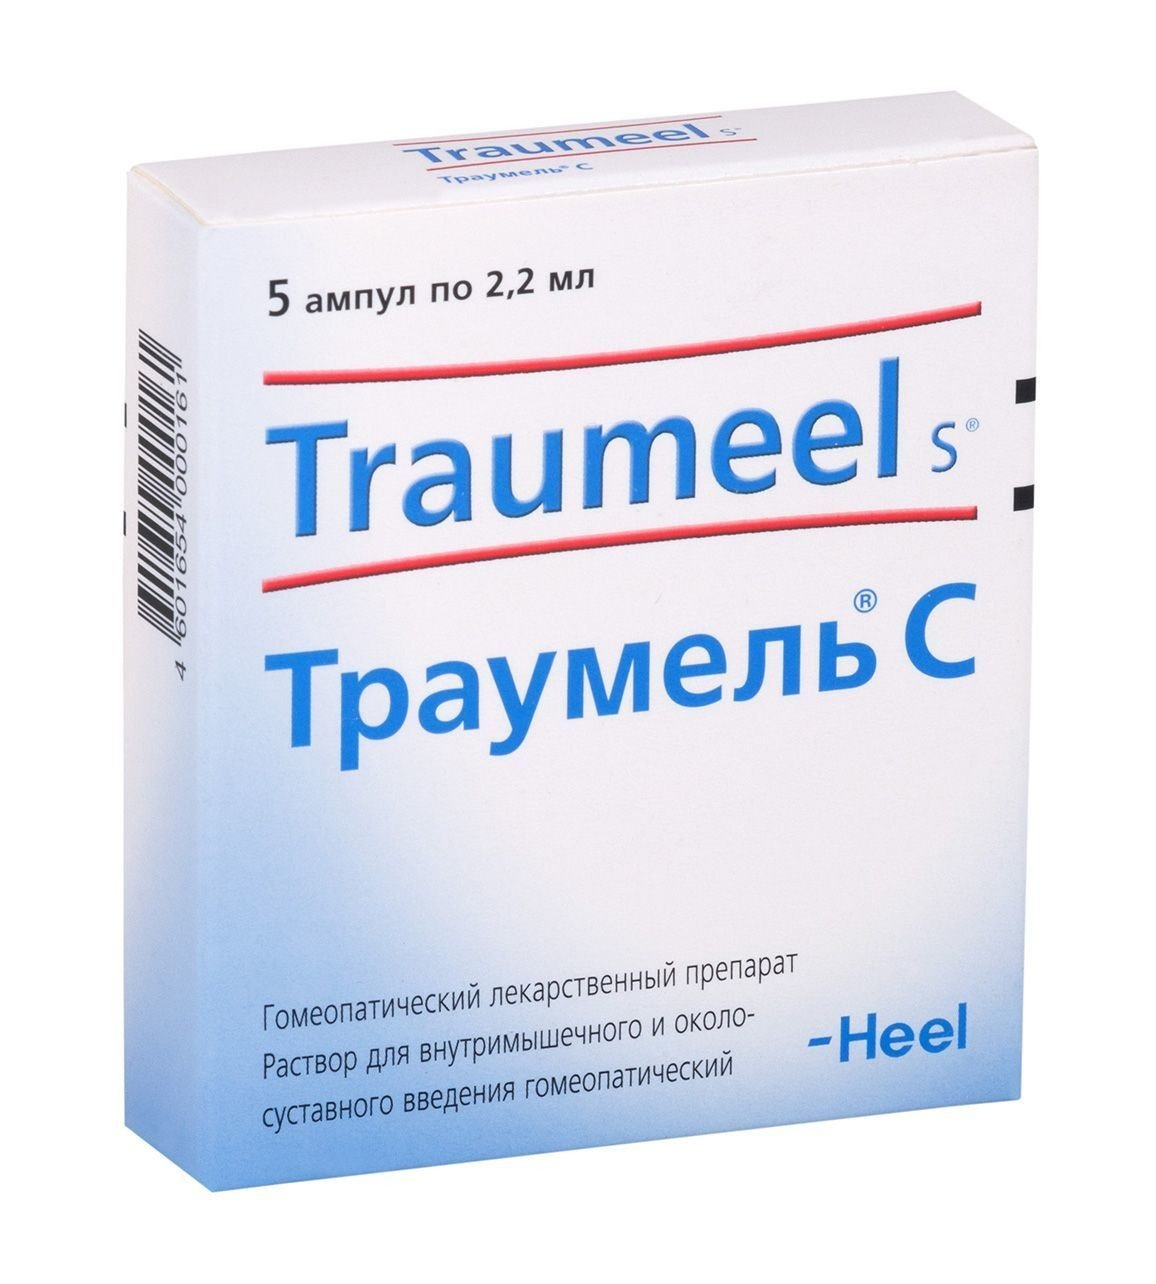 Traumel S ampoules 2.2 ml. №5